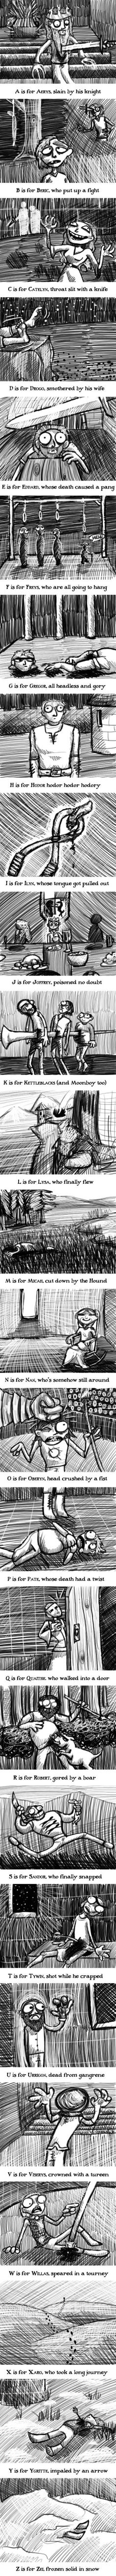 "POSSIBLE SPOILERS!! if you haven't read through book 5, you might want to give this Pin a miss. Game of Thrones a la E. Gorey's ""Gashlycrumb Tinies""."